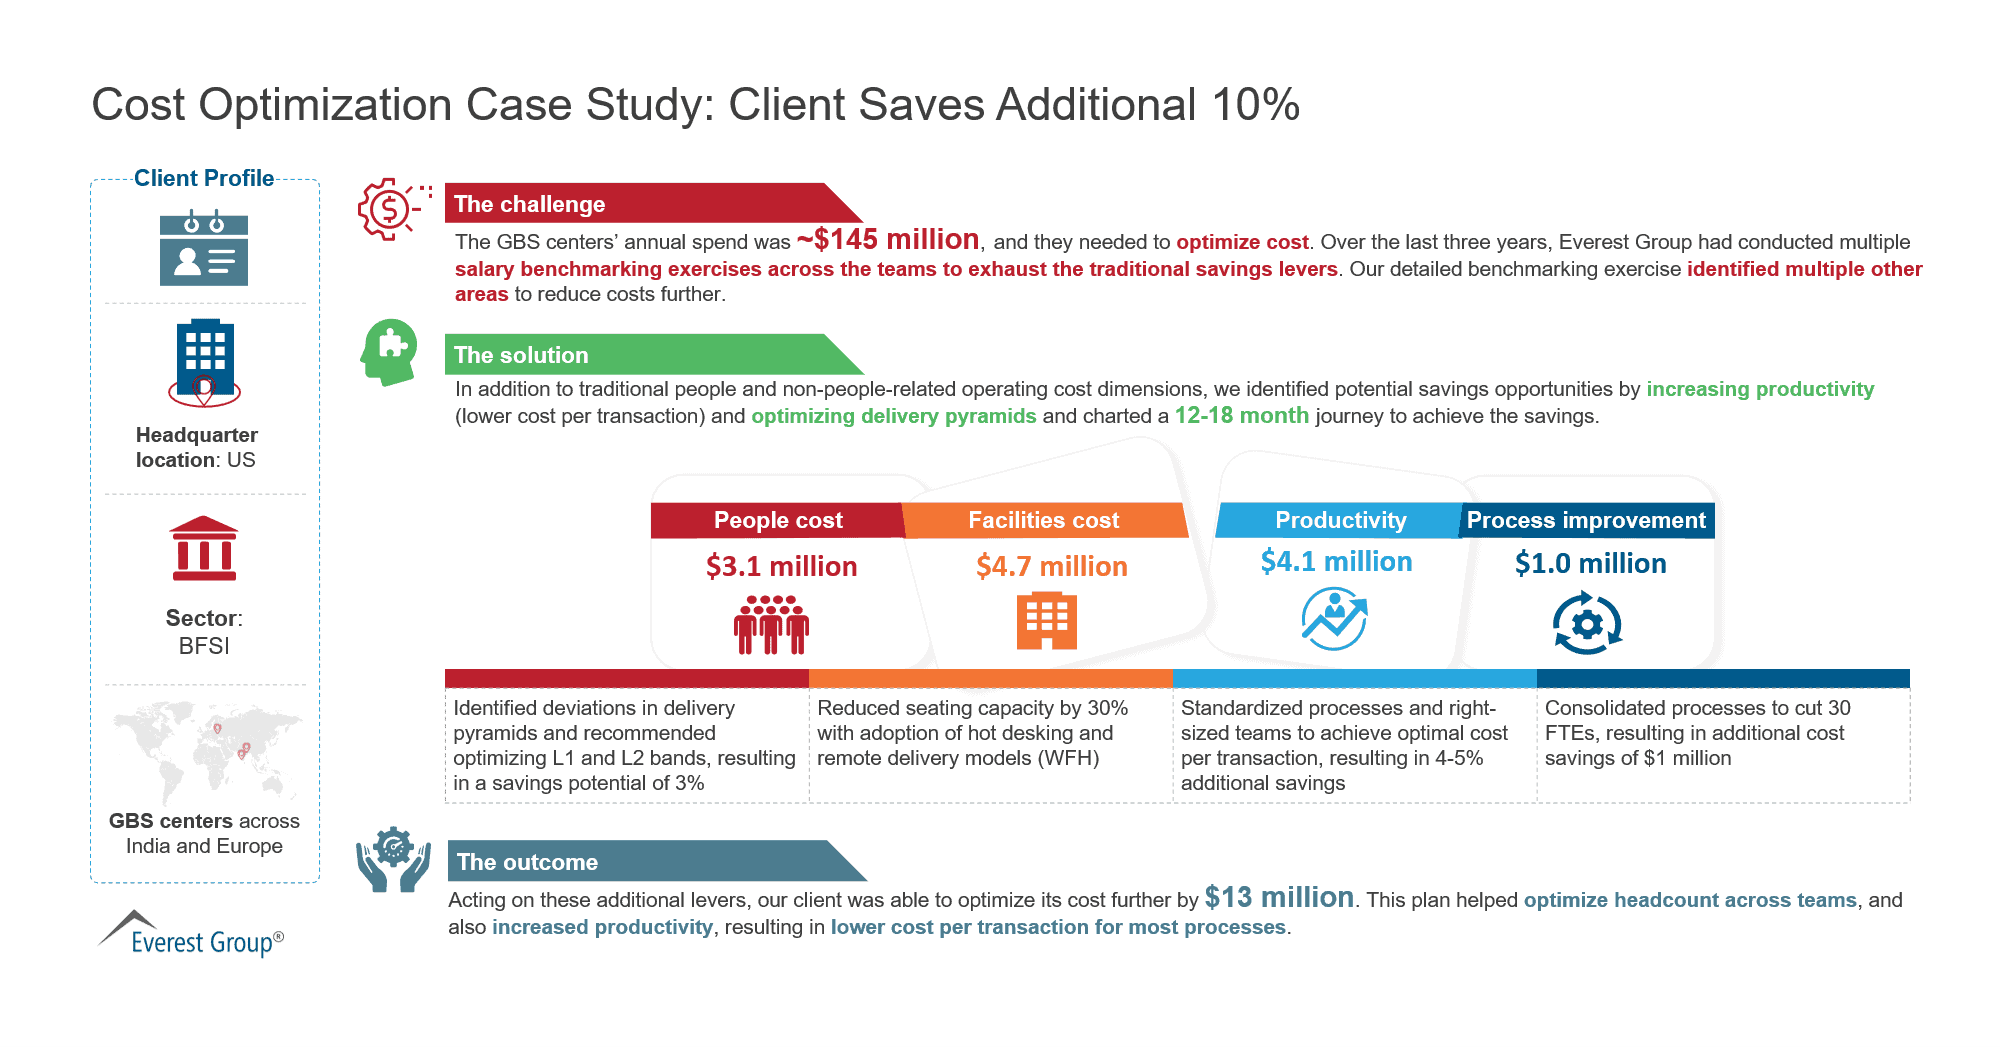 Cost Optimization Case Study - Client Saves Additional 10%